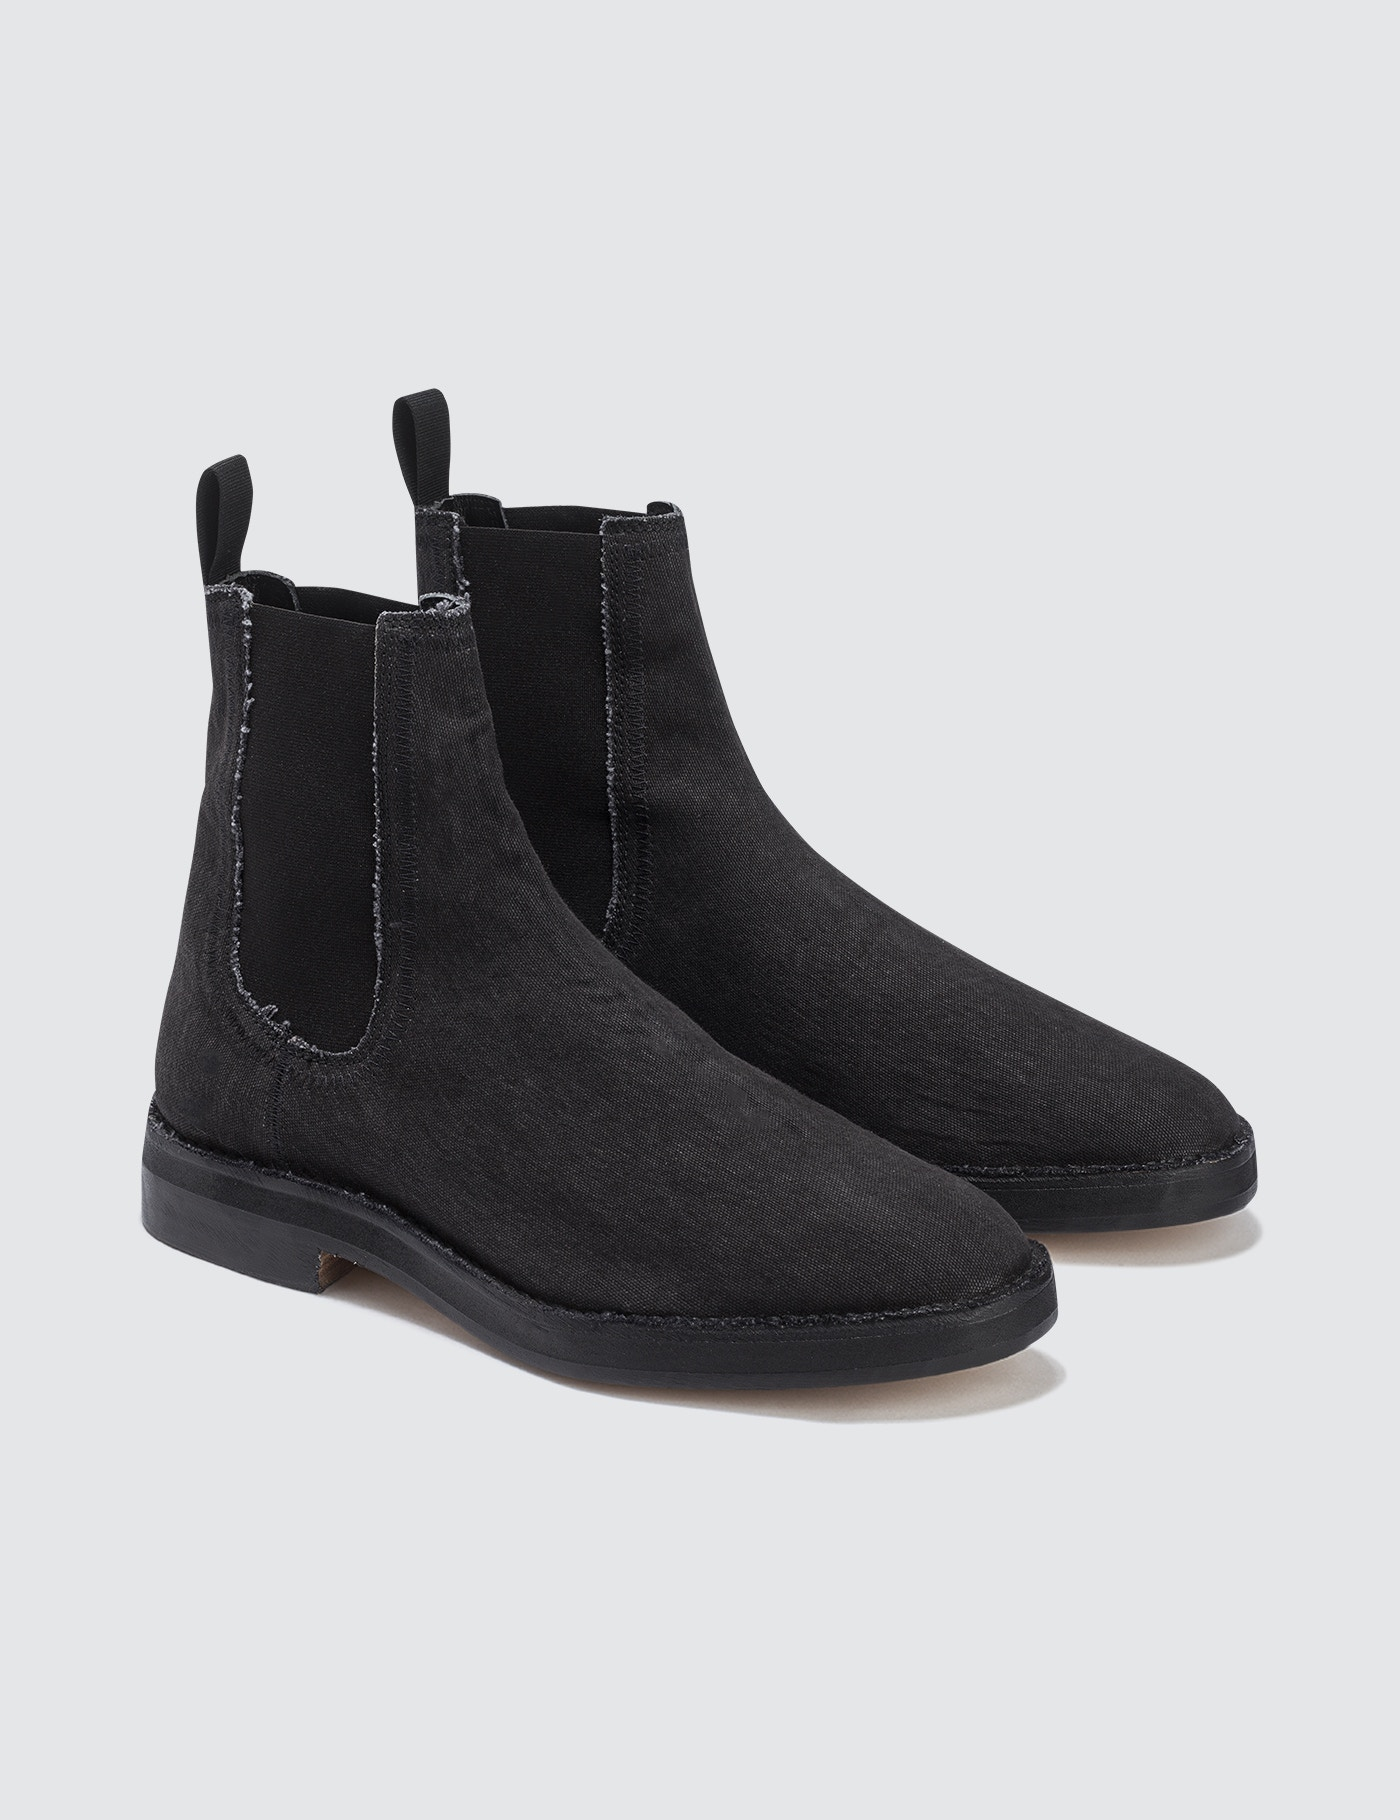 c89f754e4 Buy Original Yeezy Season 6 Chelsea Boot In Washed Canvas at ...